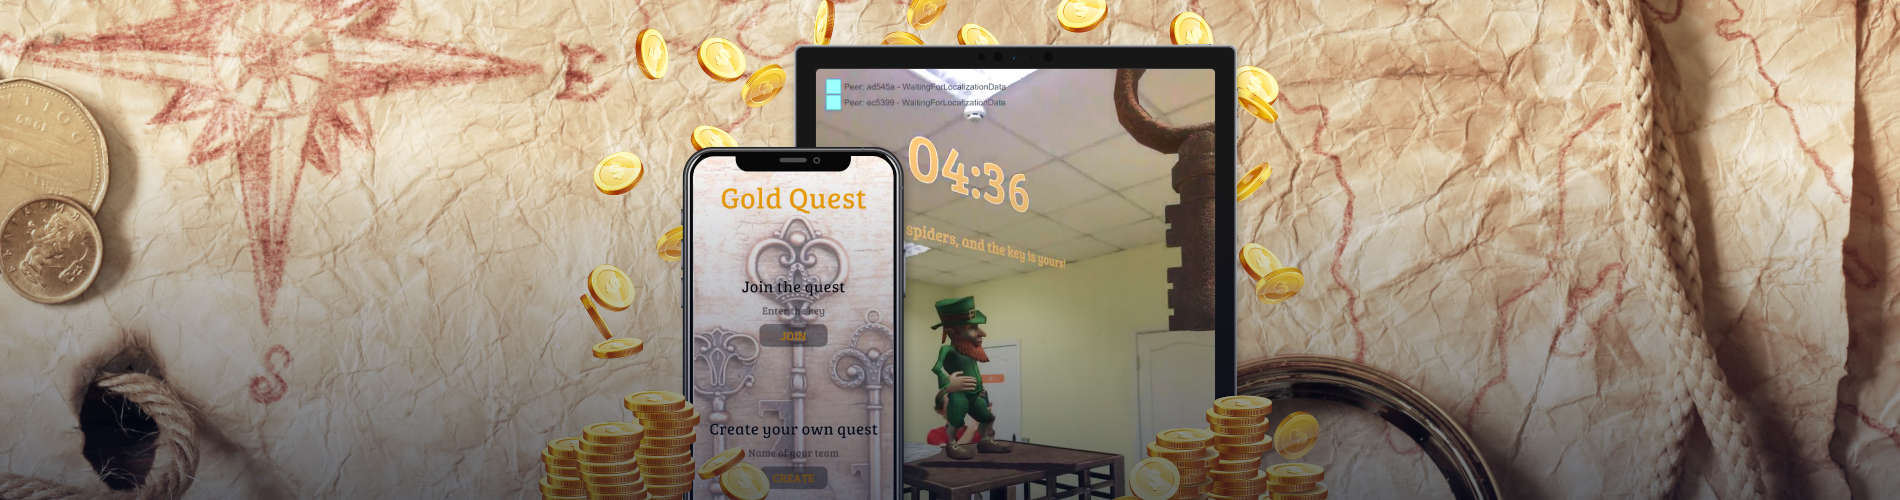 gold quest ar